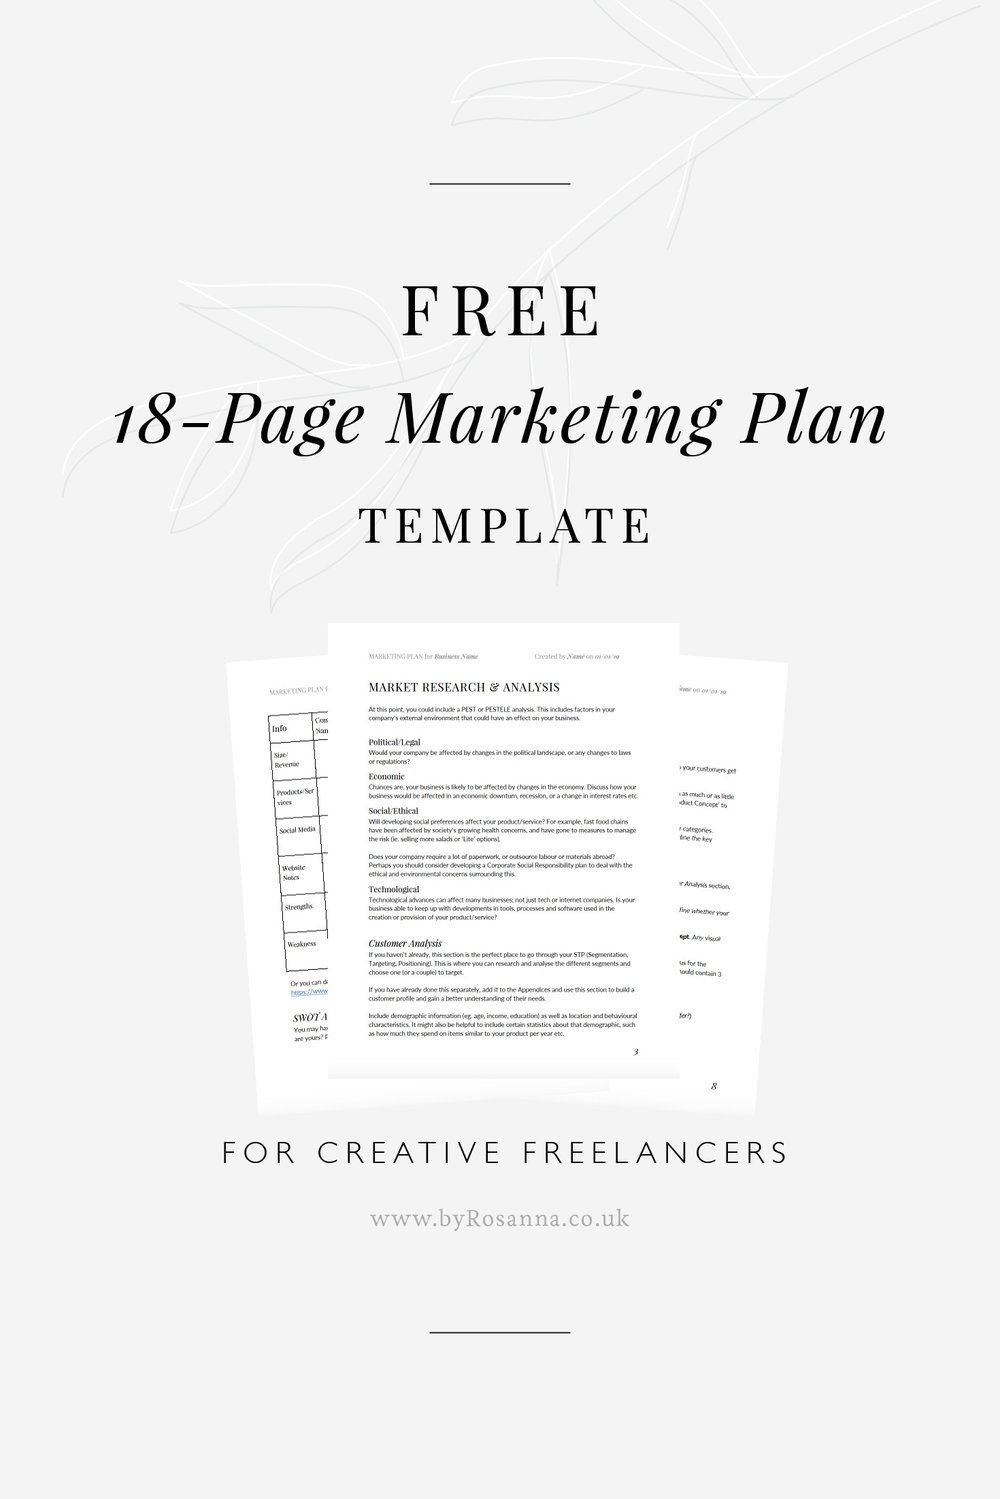 006 Unforgettable Marketing Busines Plan Template Free Inspiration  For Company DigitalFull